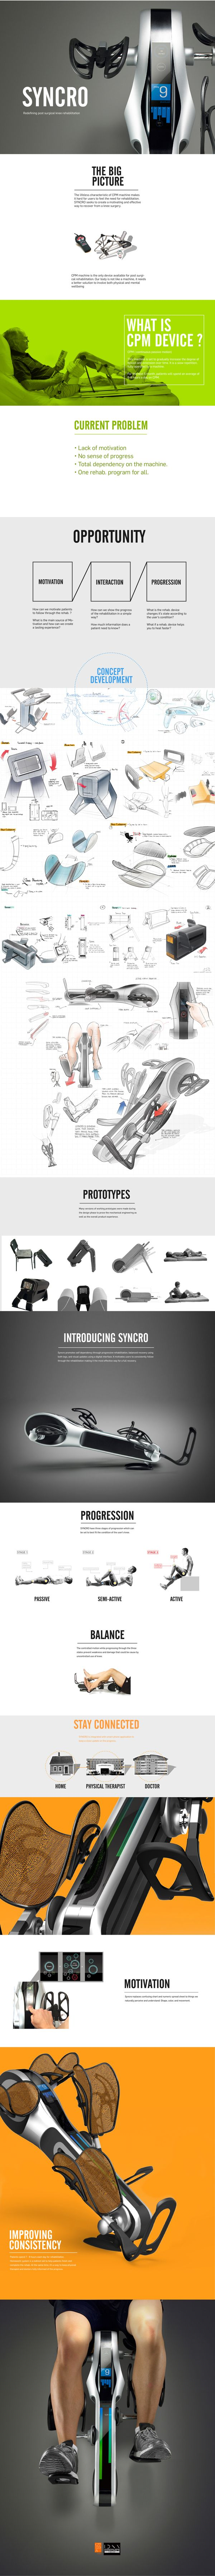 SYNCRO by James Cha, via Behance